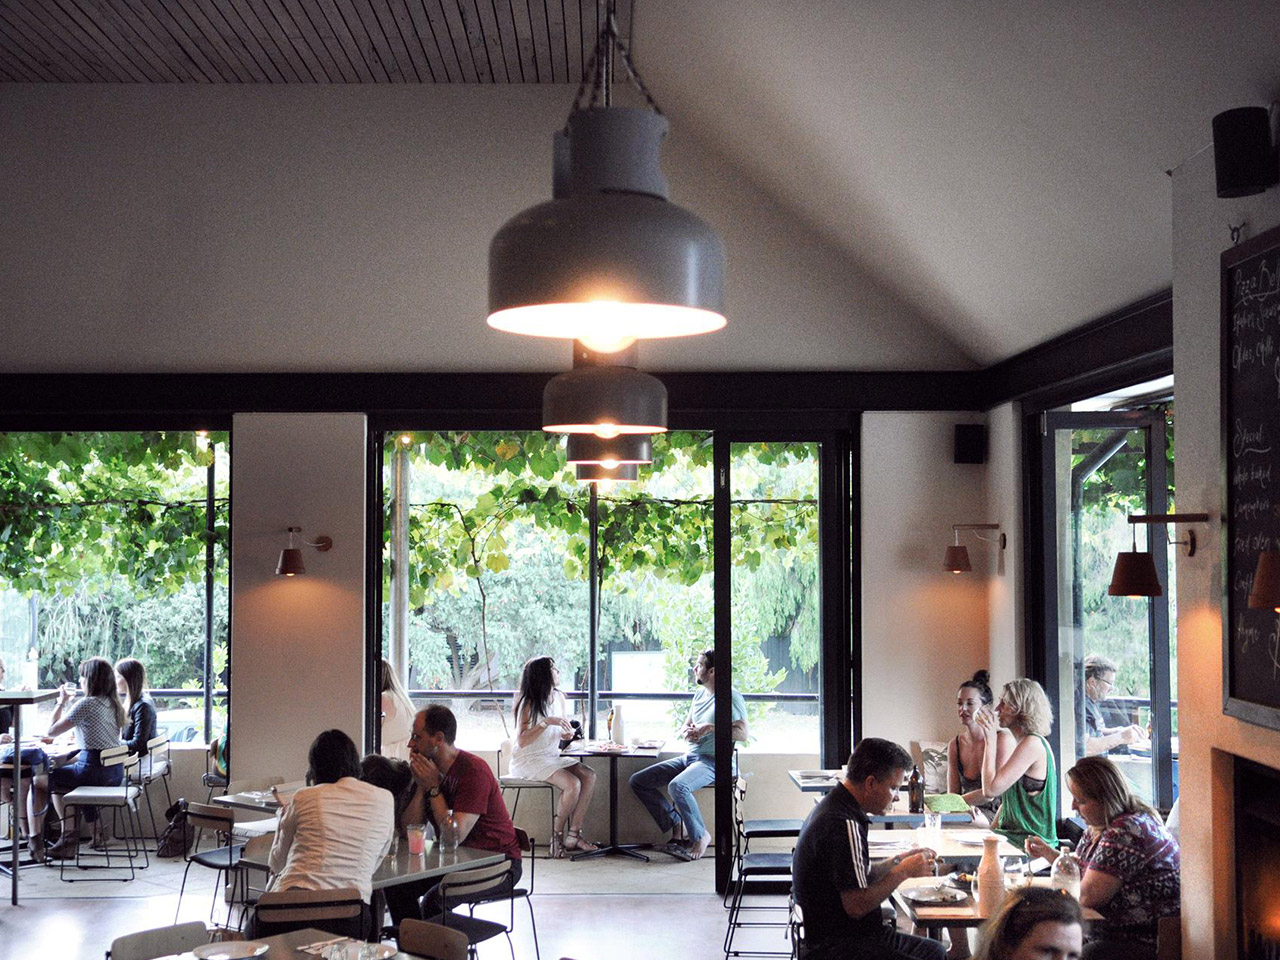 People Eating Inside the Restaurant With Hanging Lights.